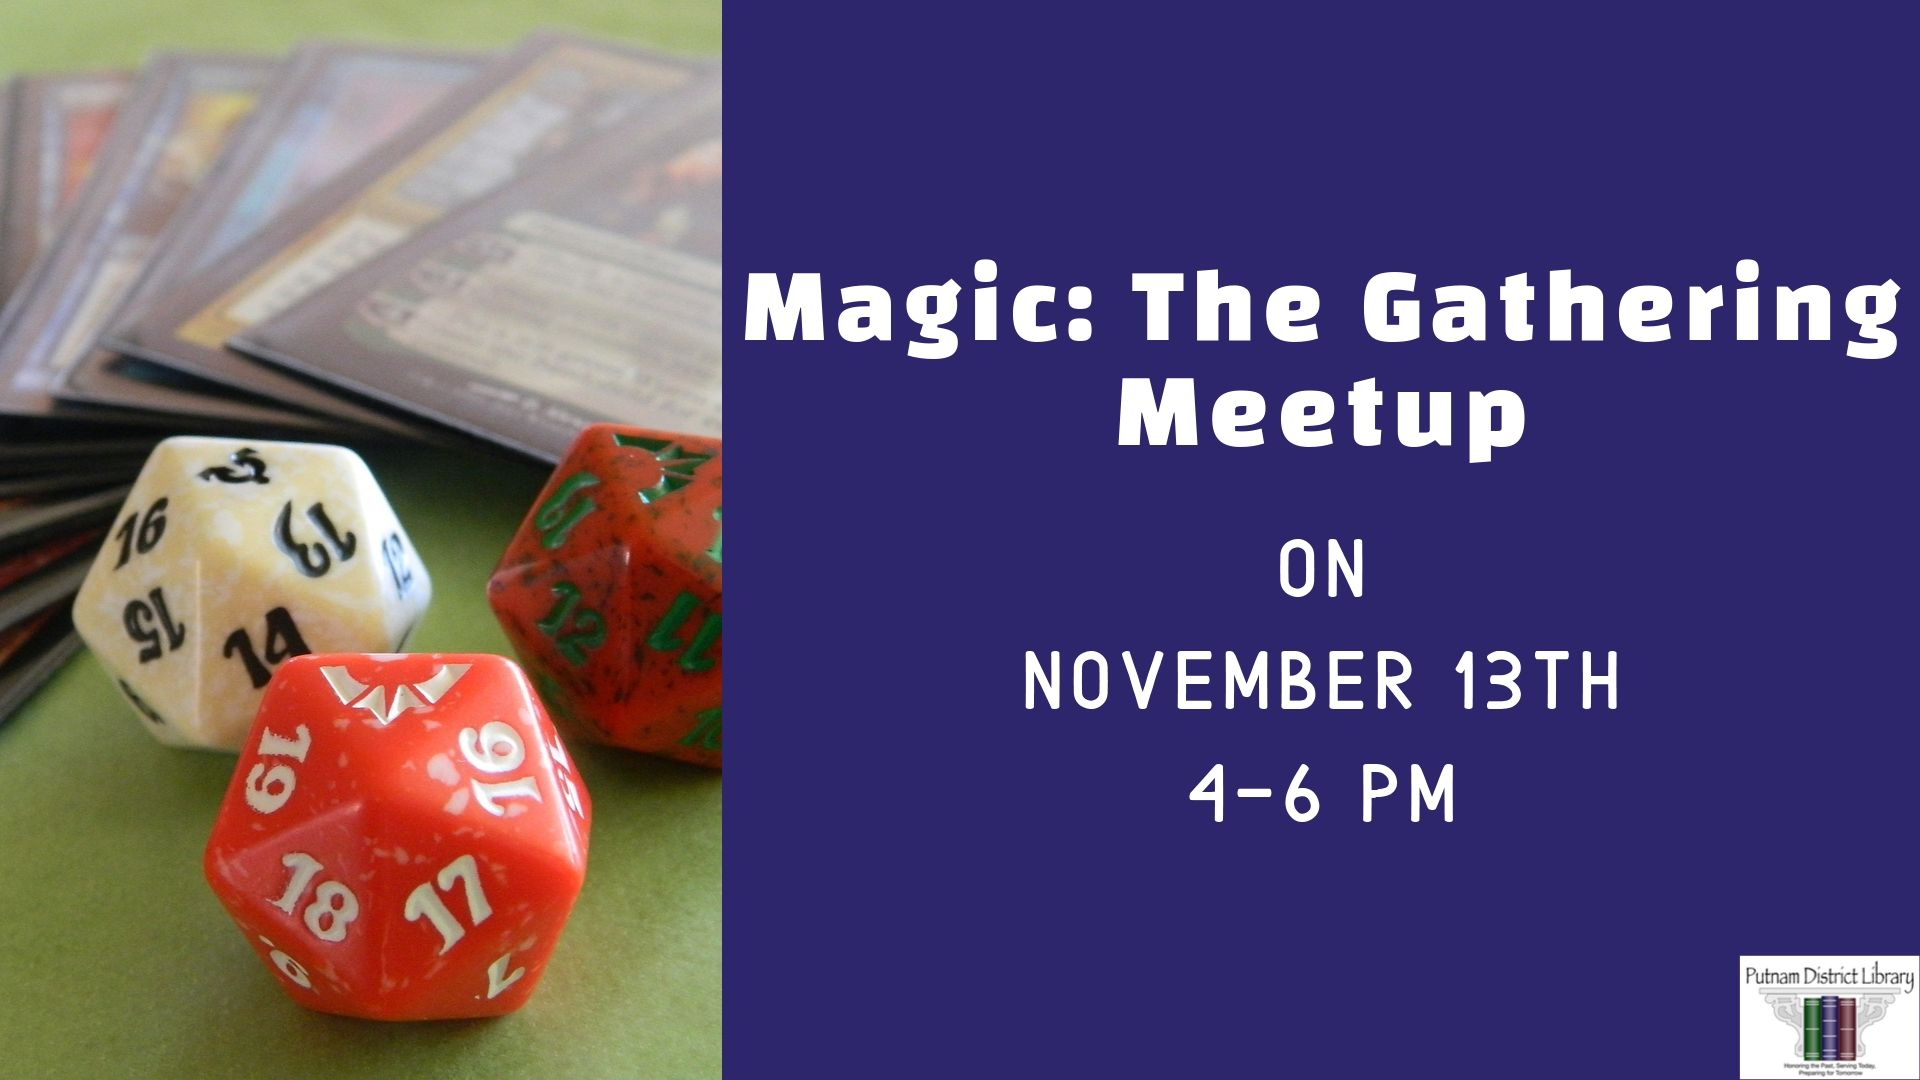 Magic: The Gathering Meetup